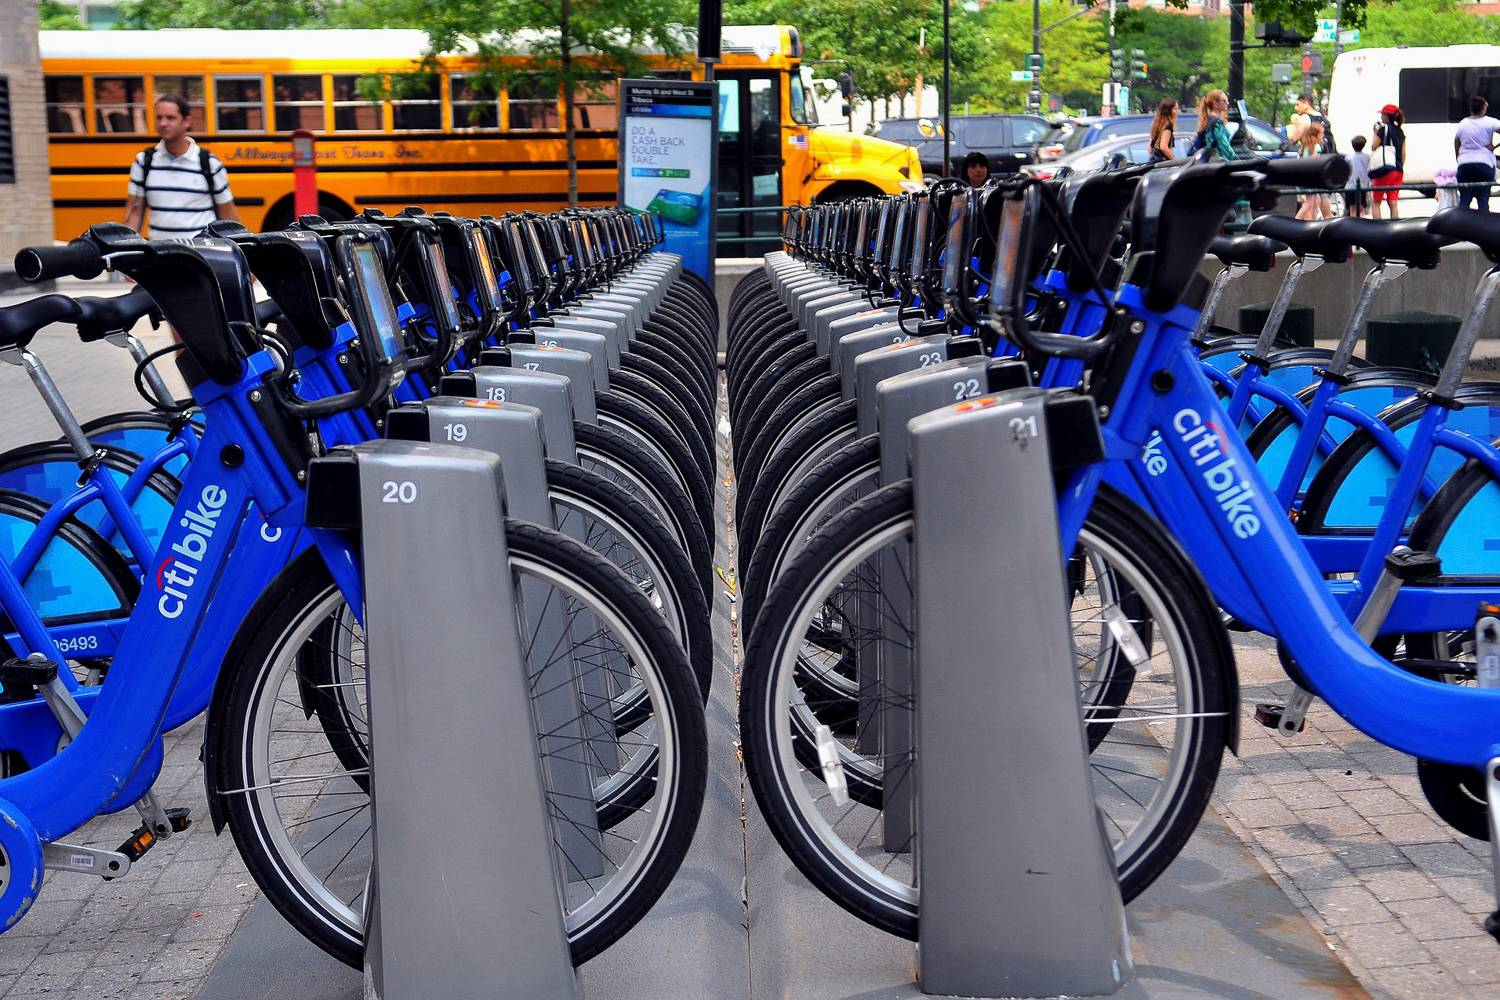 Image of Citi Bikes at a bike sharing dock station in New York City.